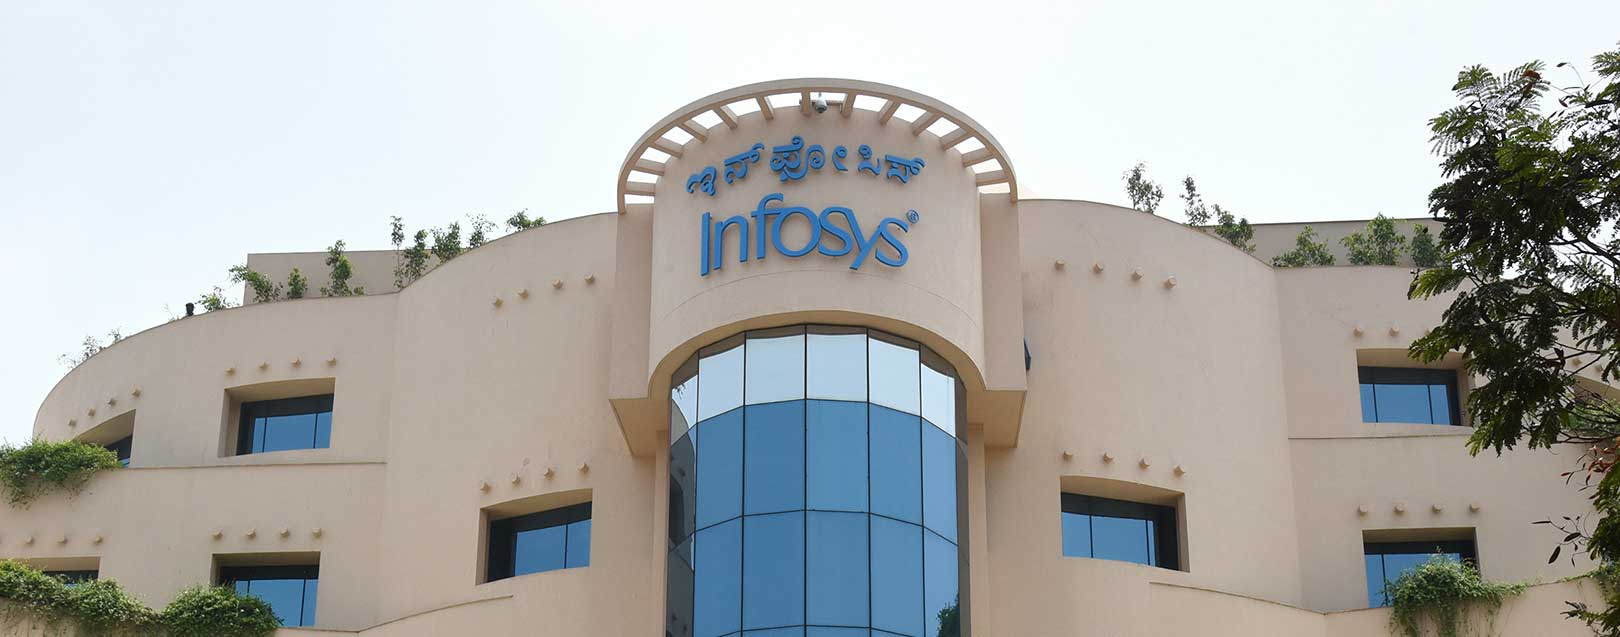 US Govt welcomes Infosys' decision to hire 10,000 Americans